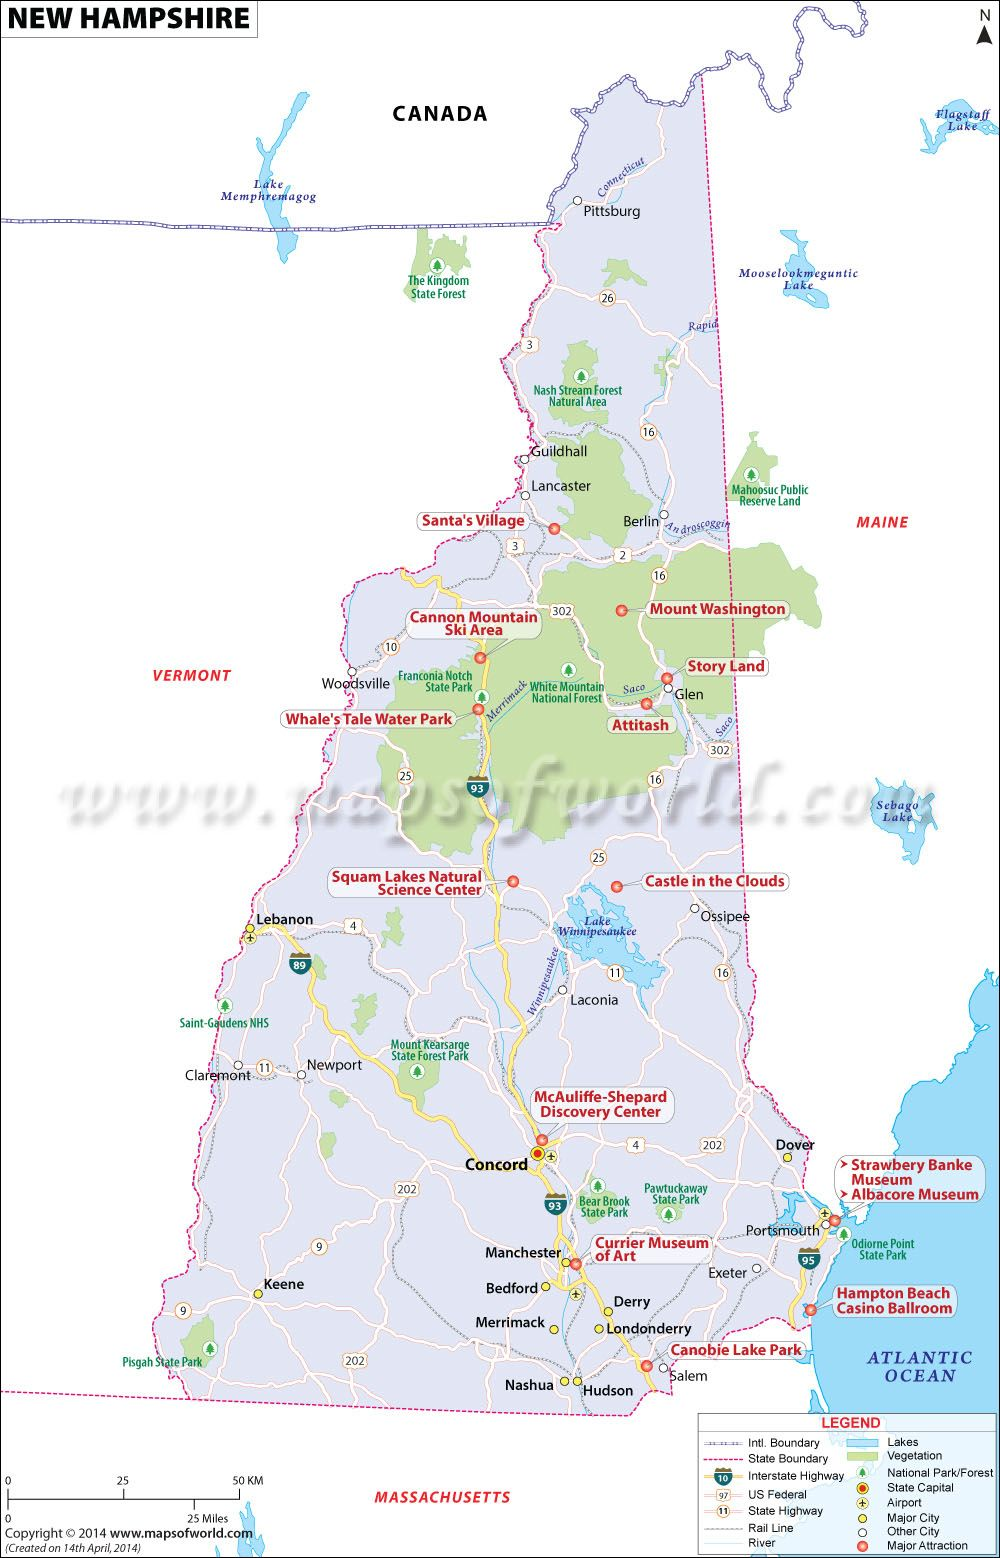 New Hampshire map showing the major travel attractions including